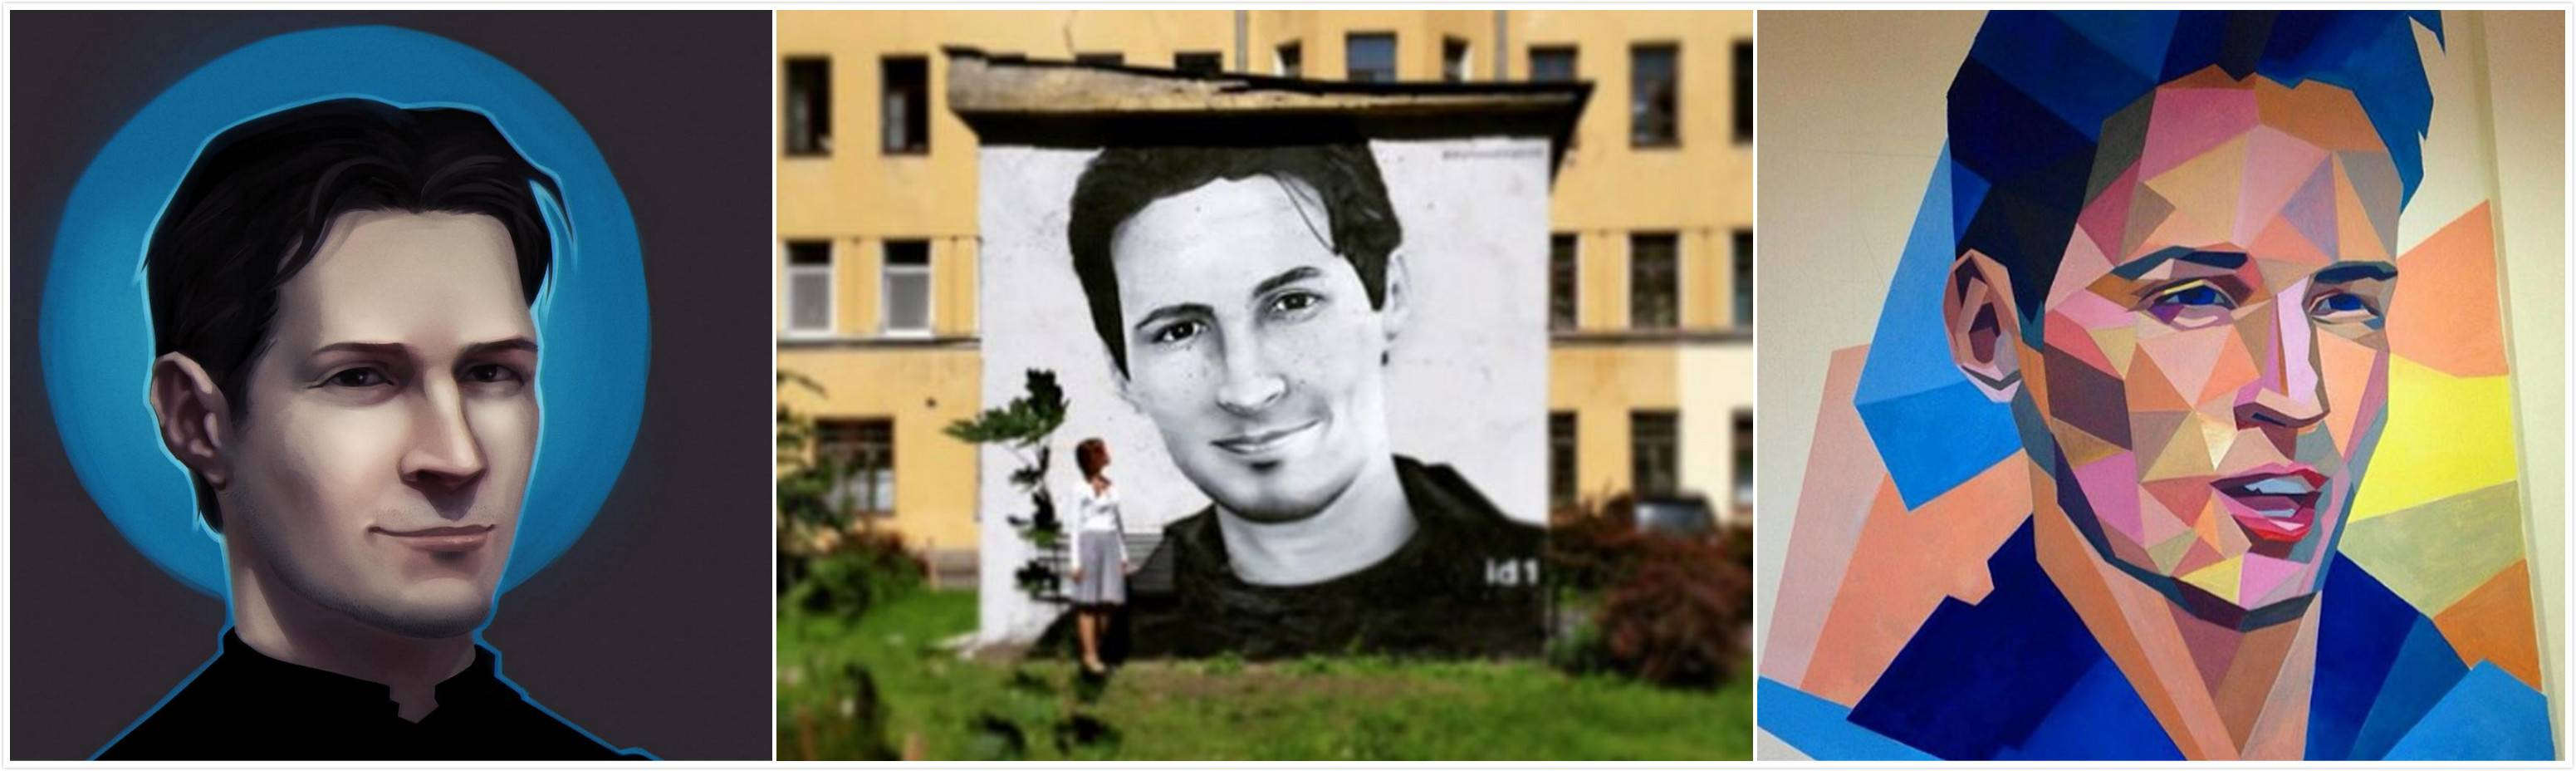 durov-icon